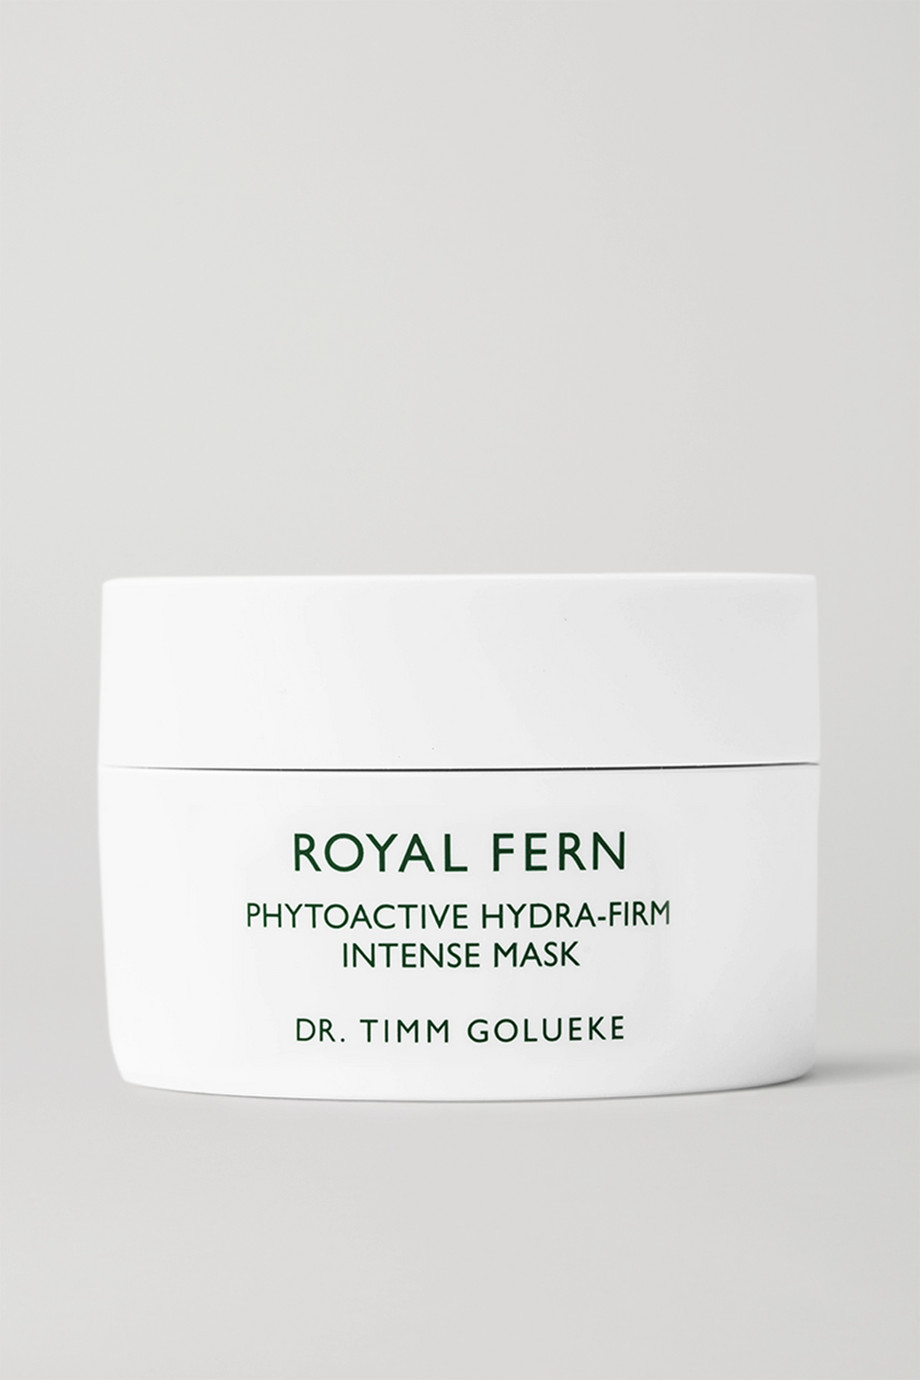 Royal Fern Masque Hydra-Firm Intense Phytoactive, 50 ml